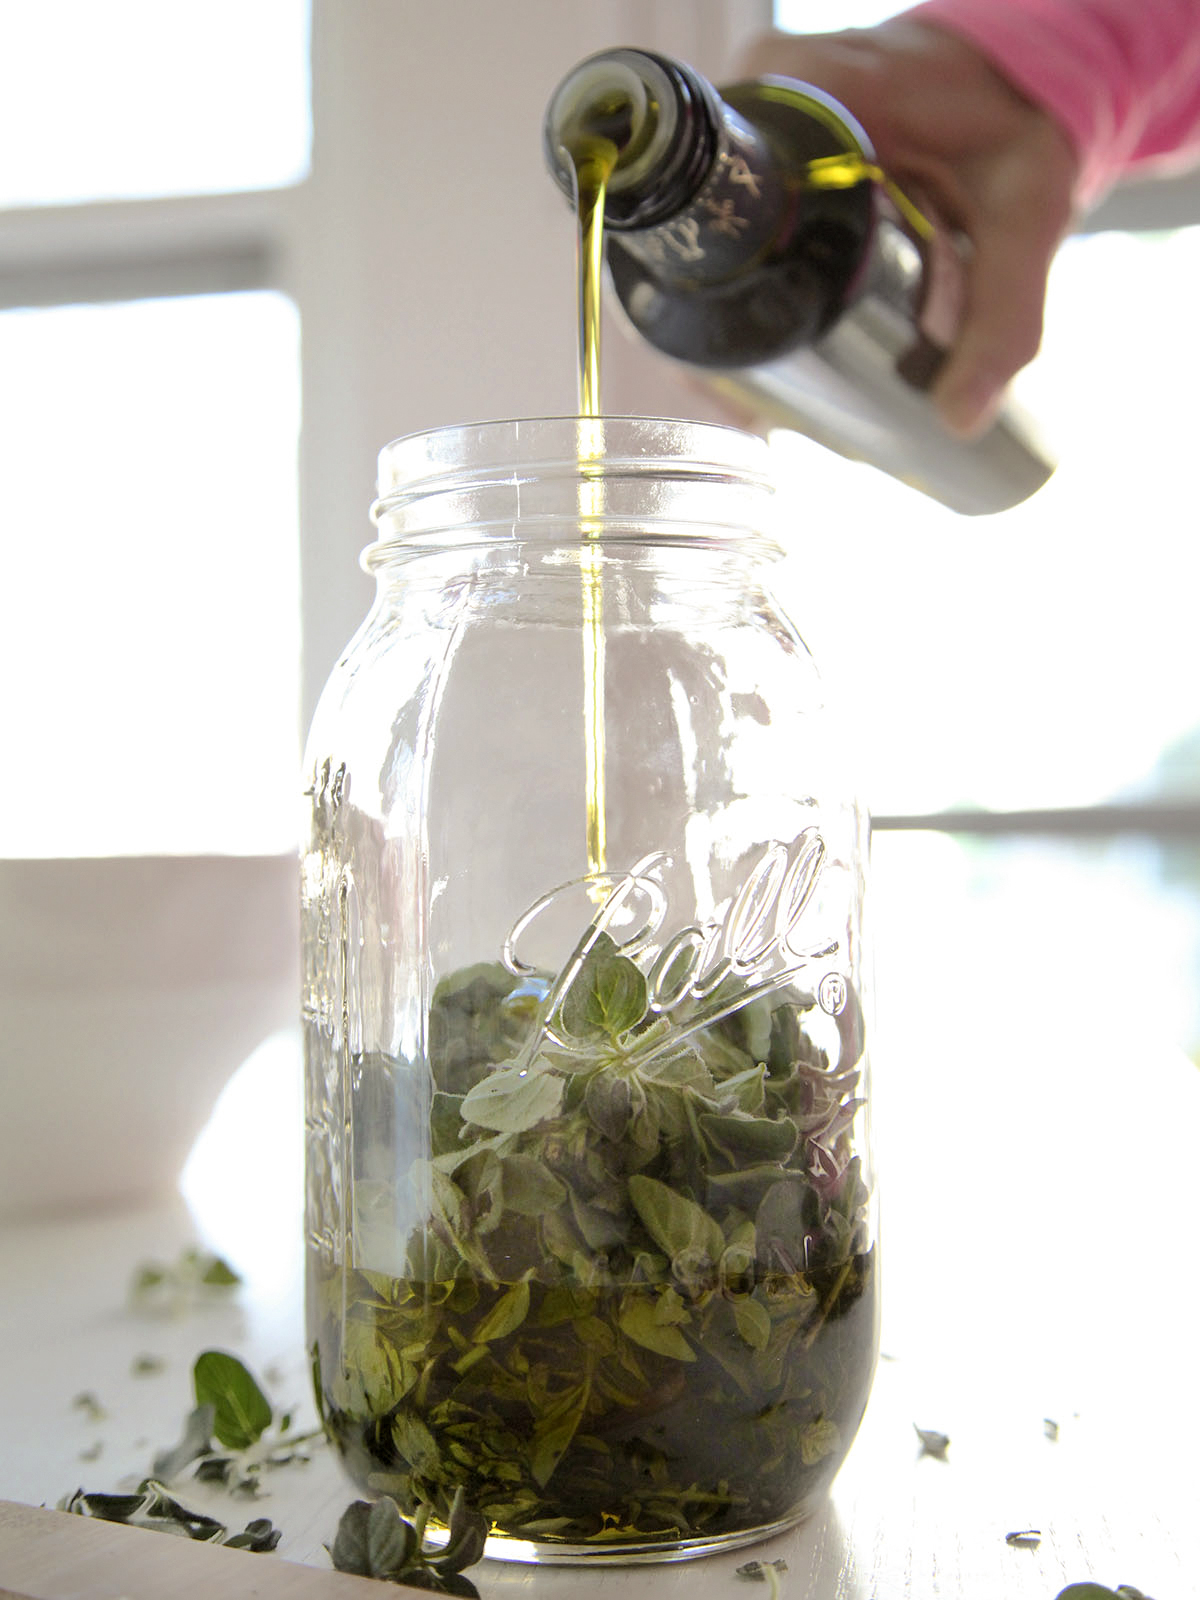 How To Make Herb-Infused Oils | Herbal Academy | There are many methods of infusing oil with herbs. In this article, we will demonstrate how to make herb-infused oils using these various methods.